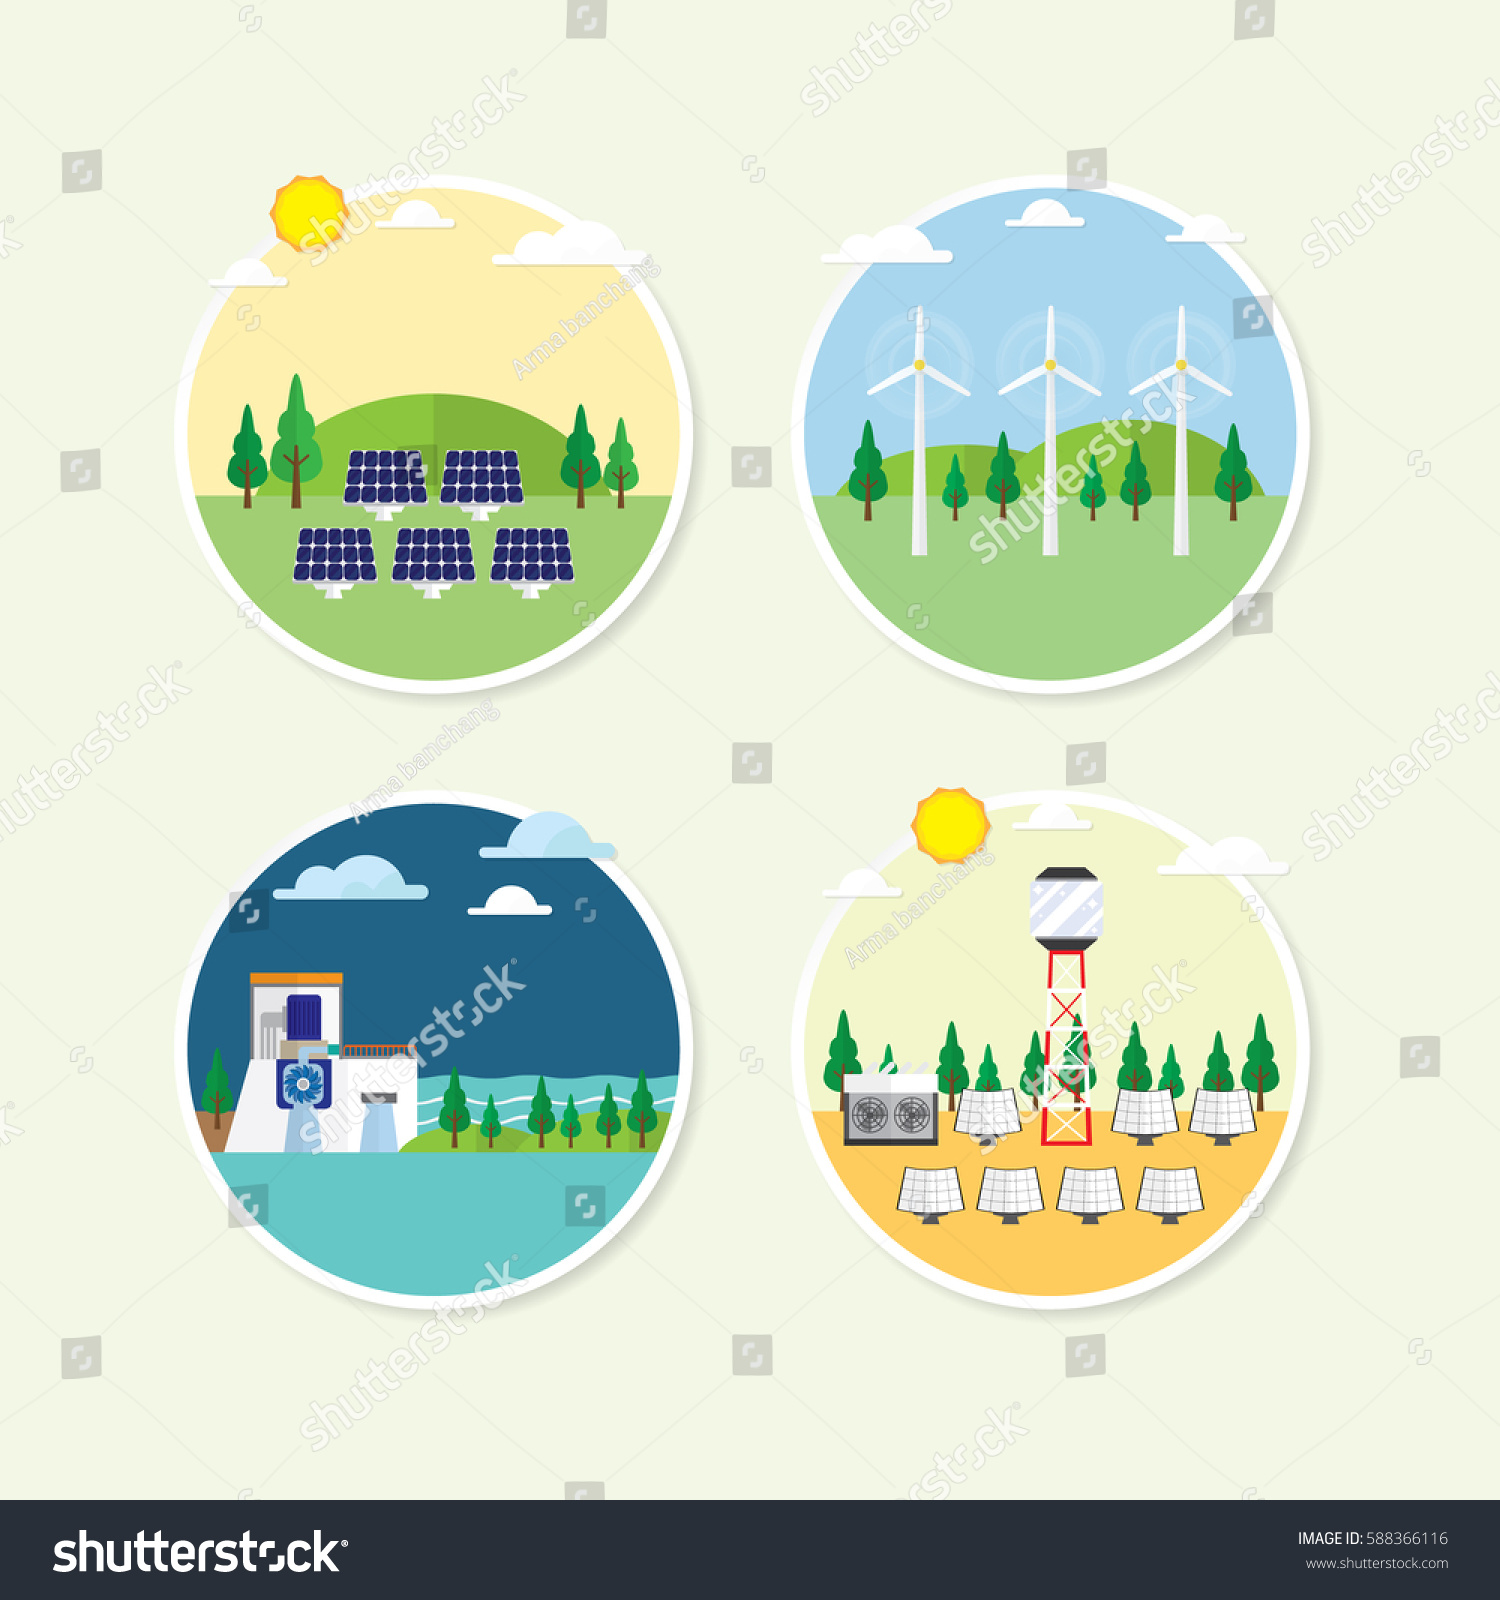 Renewable Energy Circle Icon Solar Cell Stock Vector